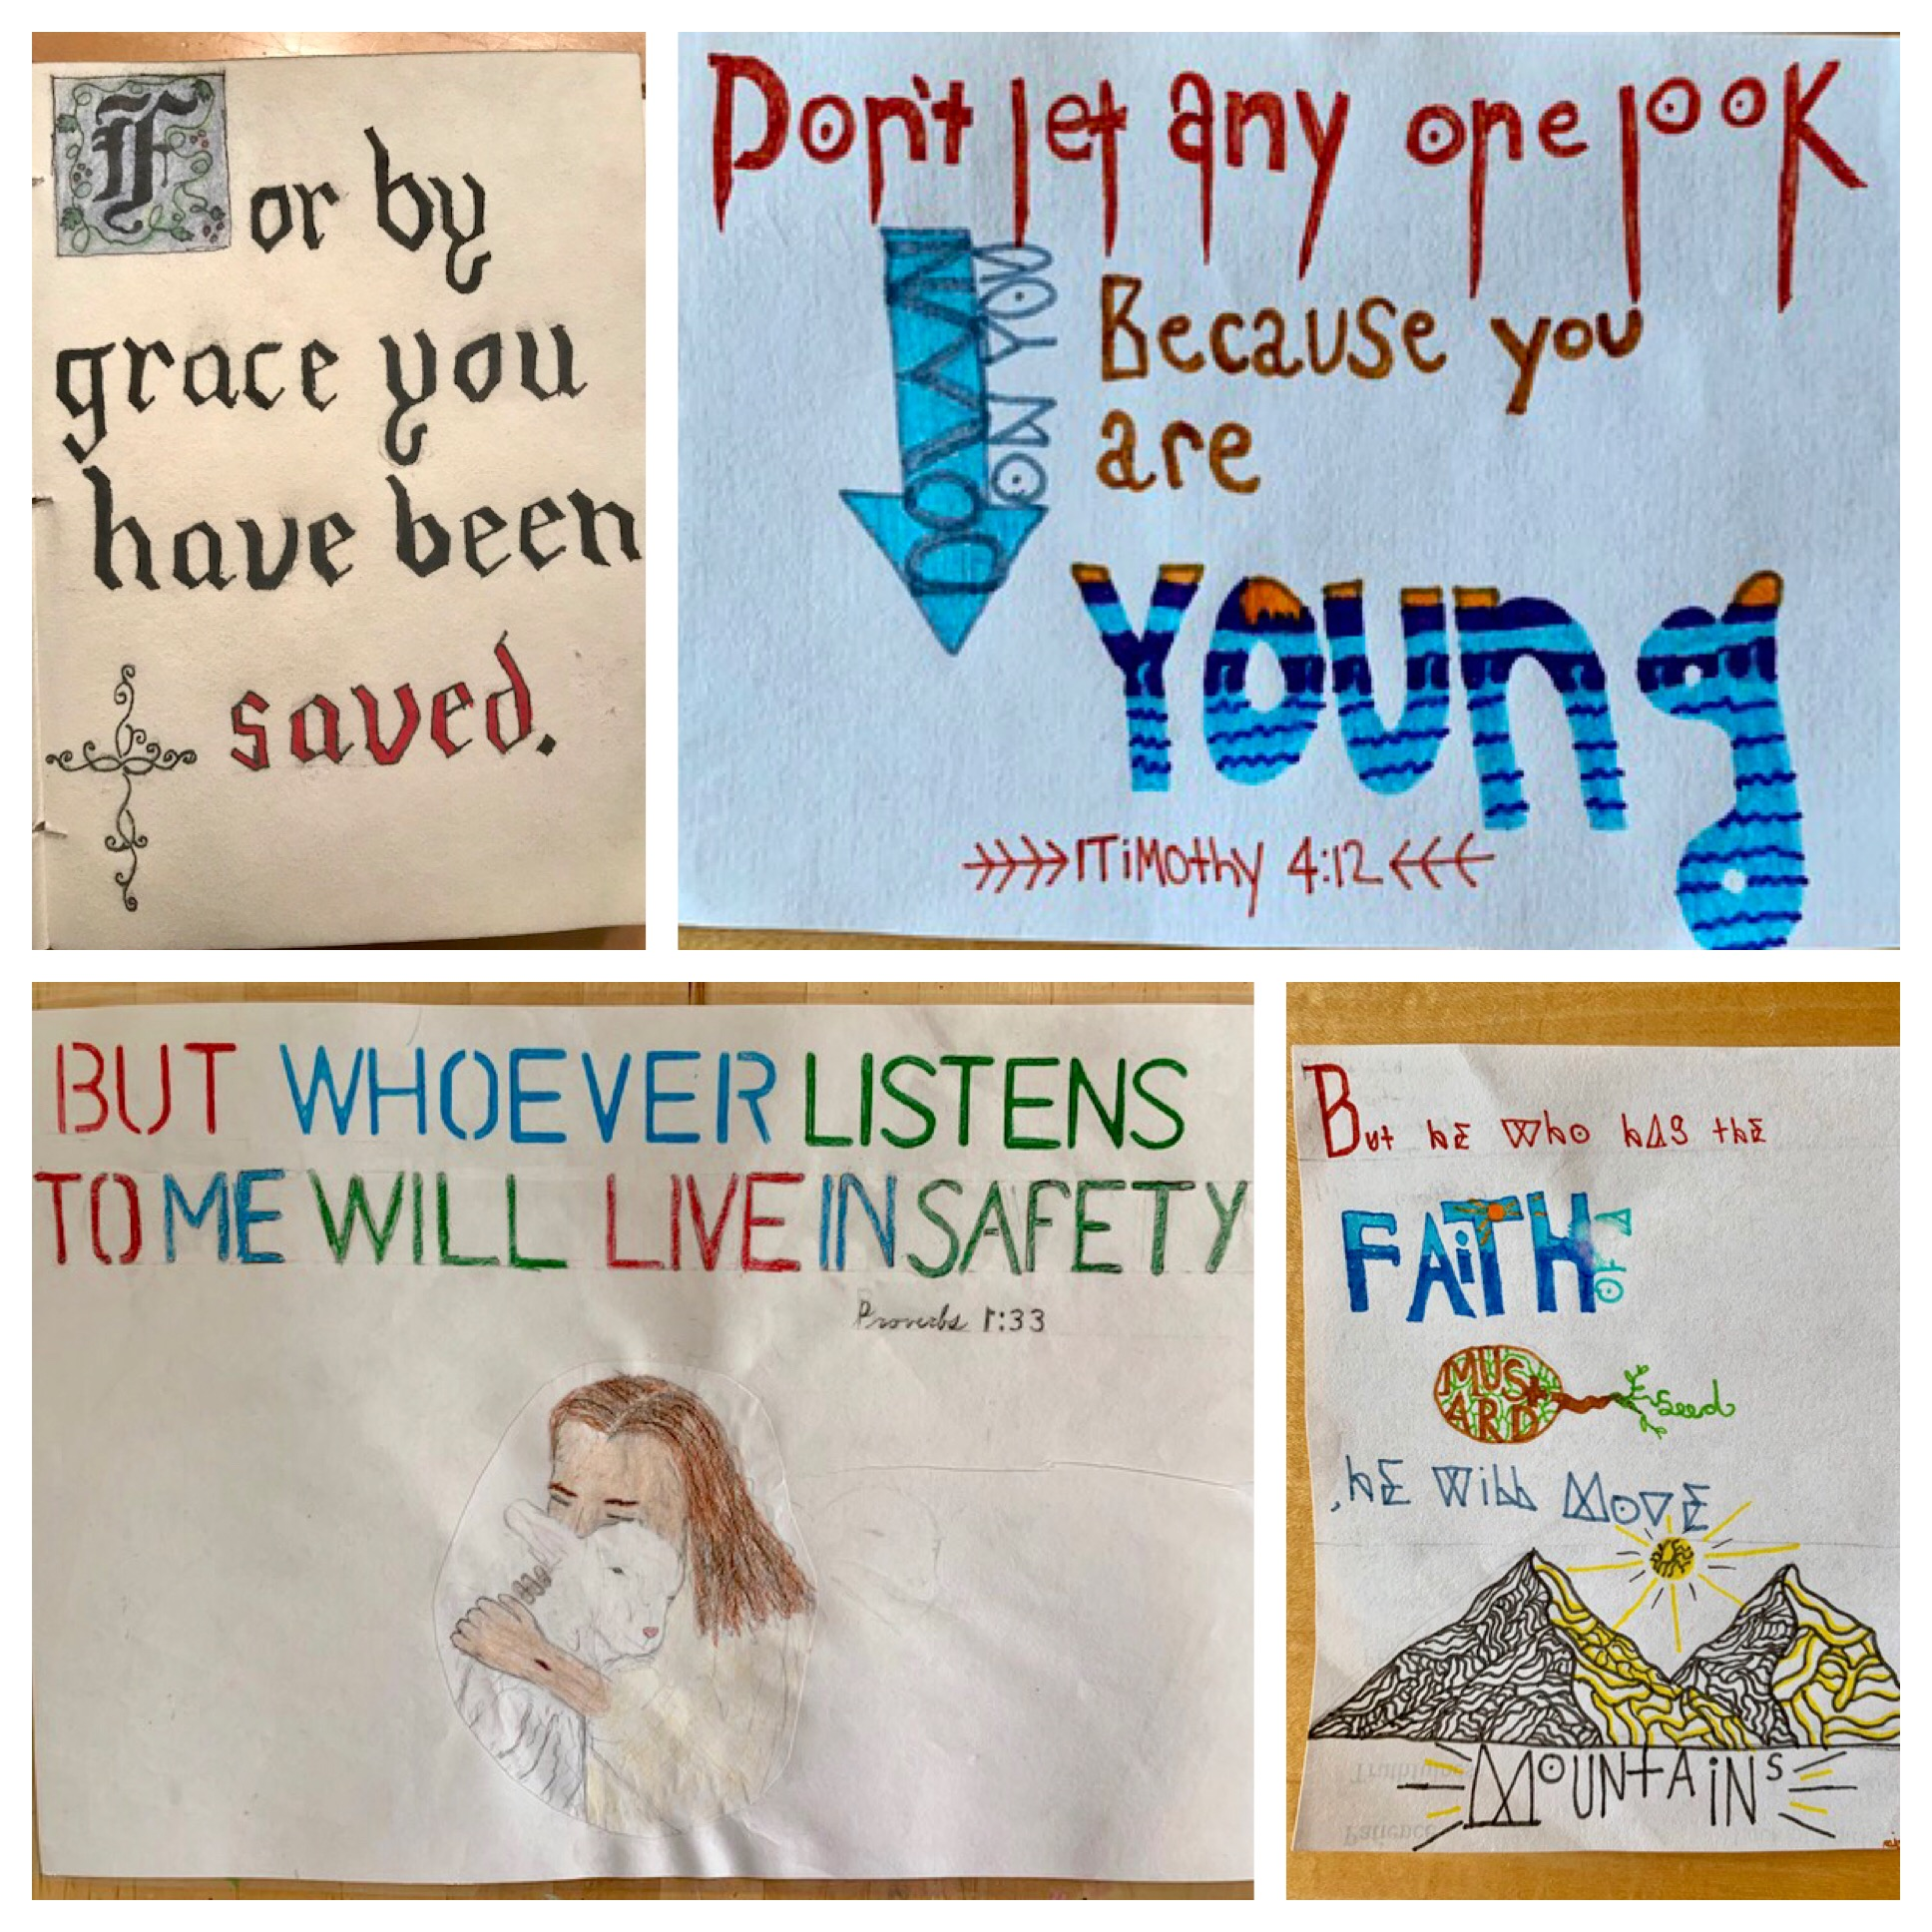 Visual faith responses by teens